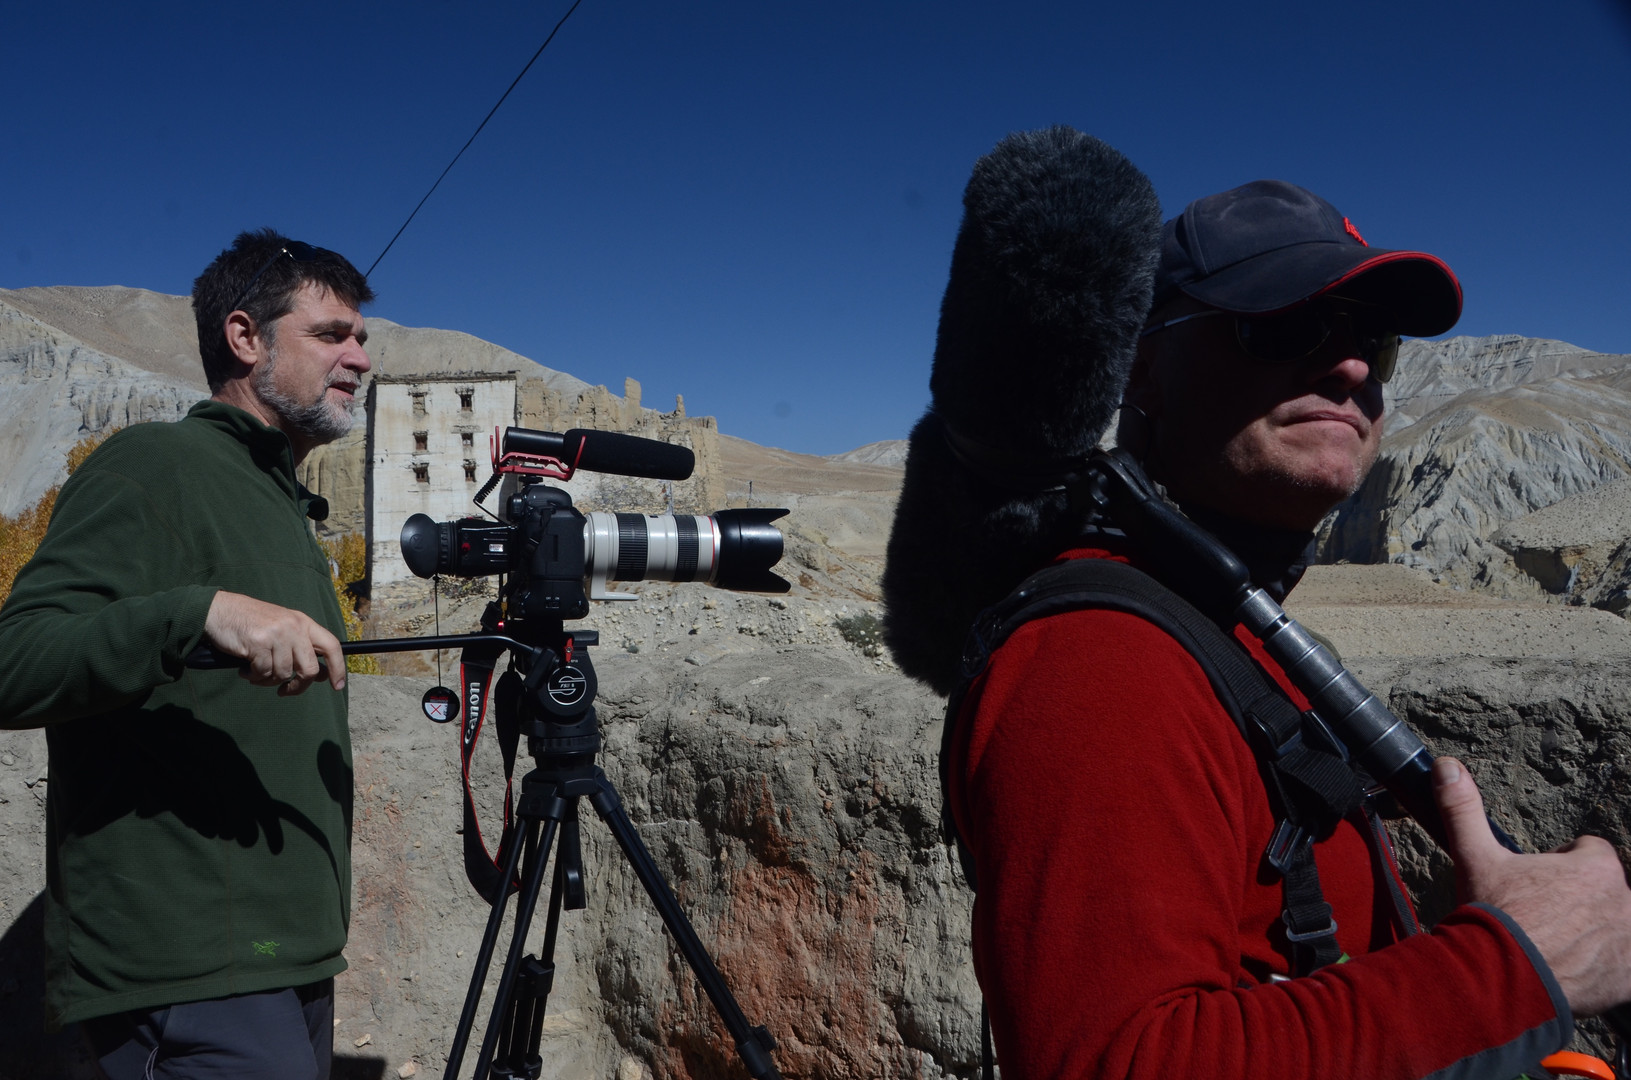 Andrew and Michael - Mustang, Nepal